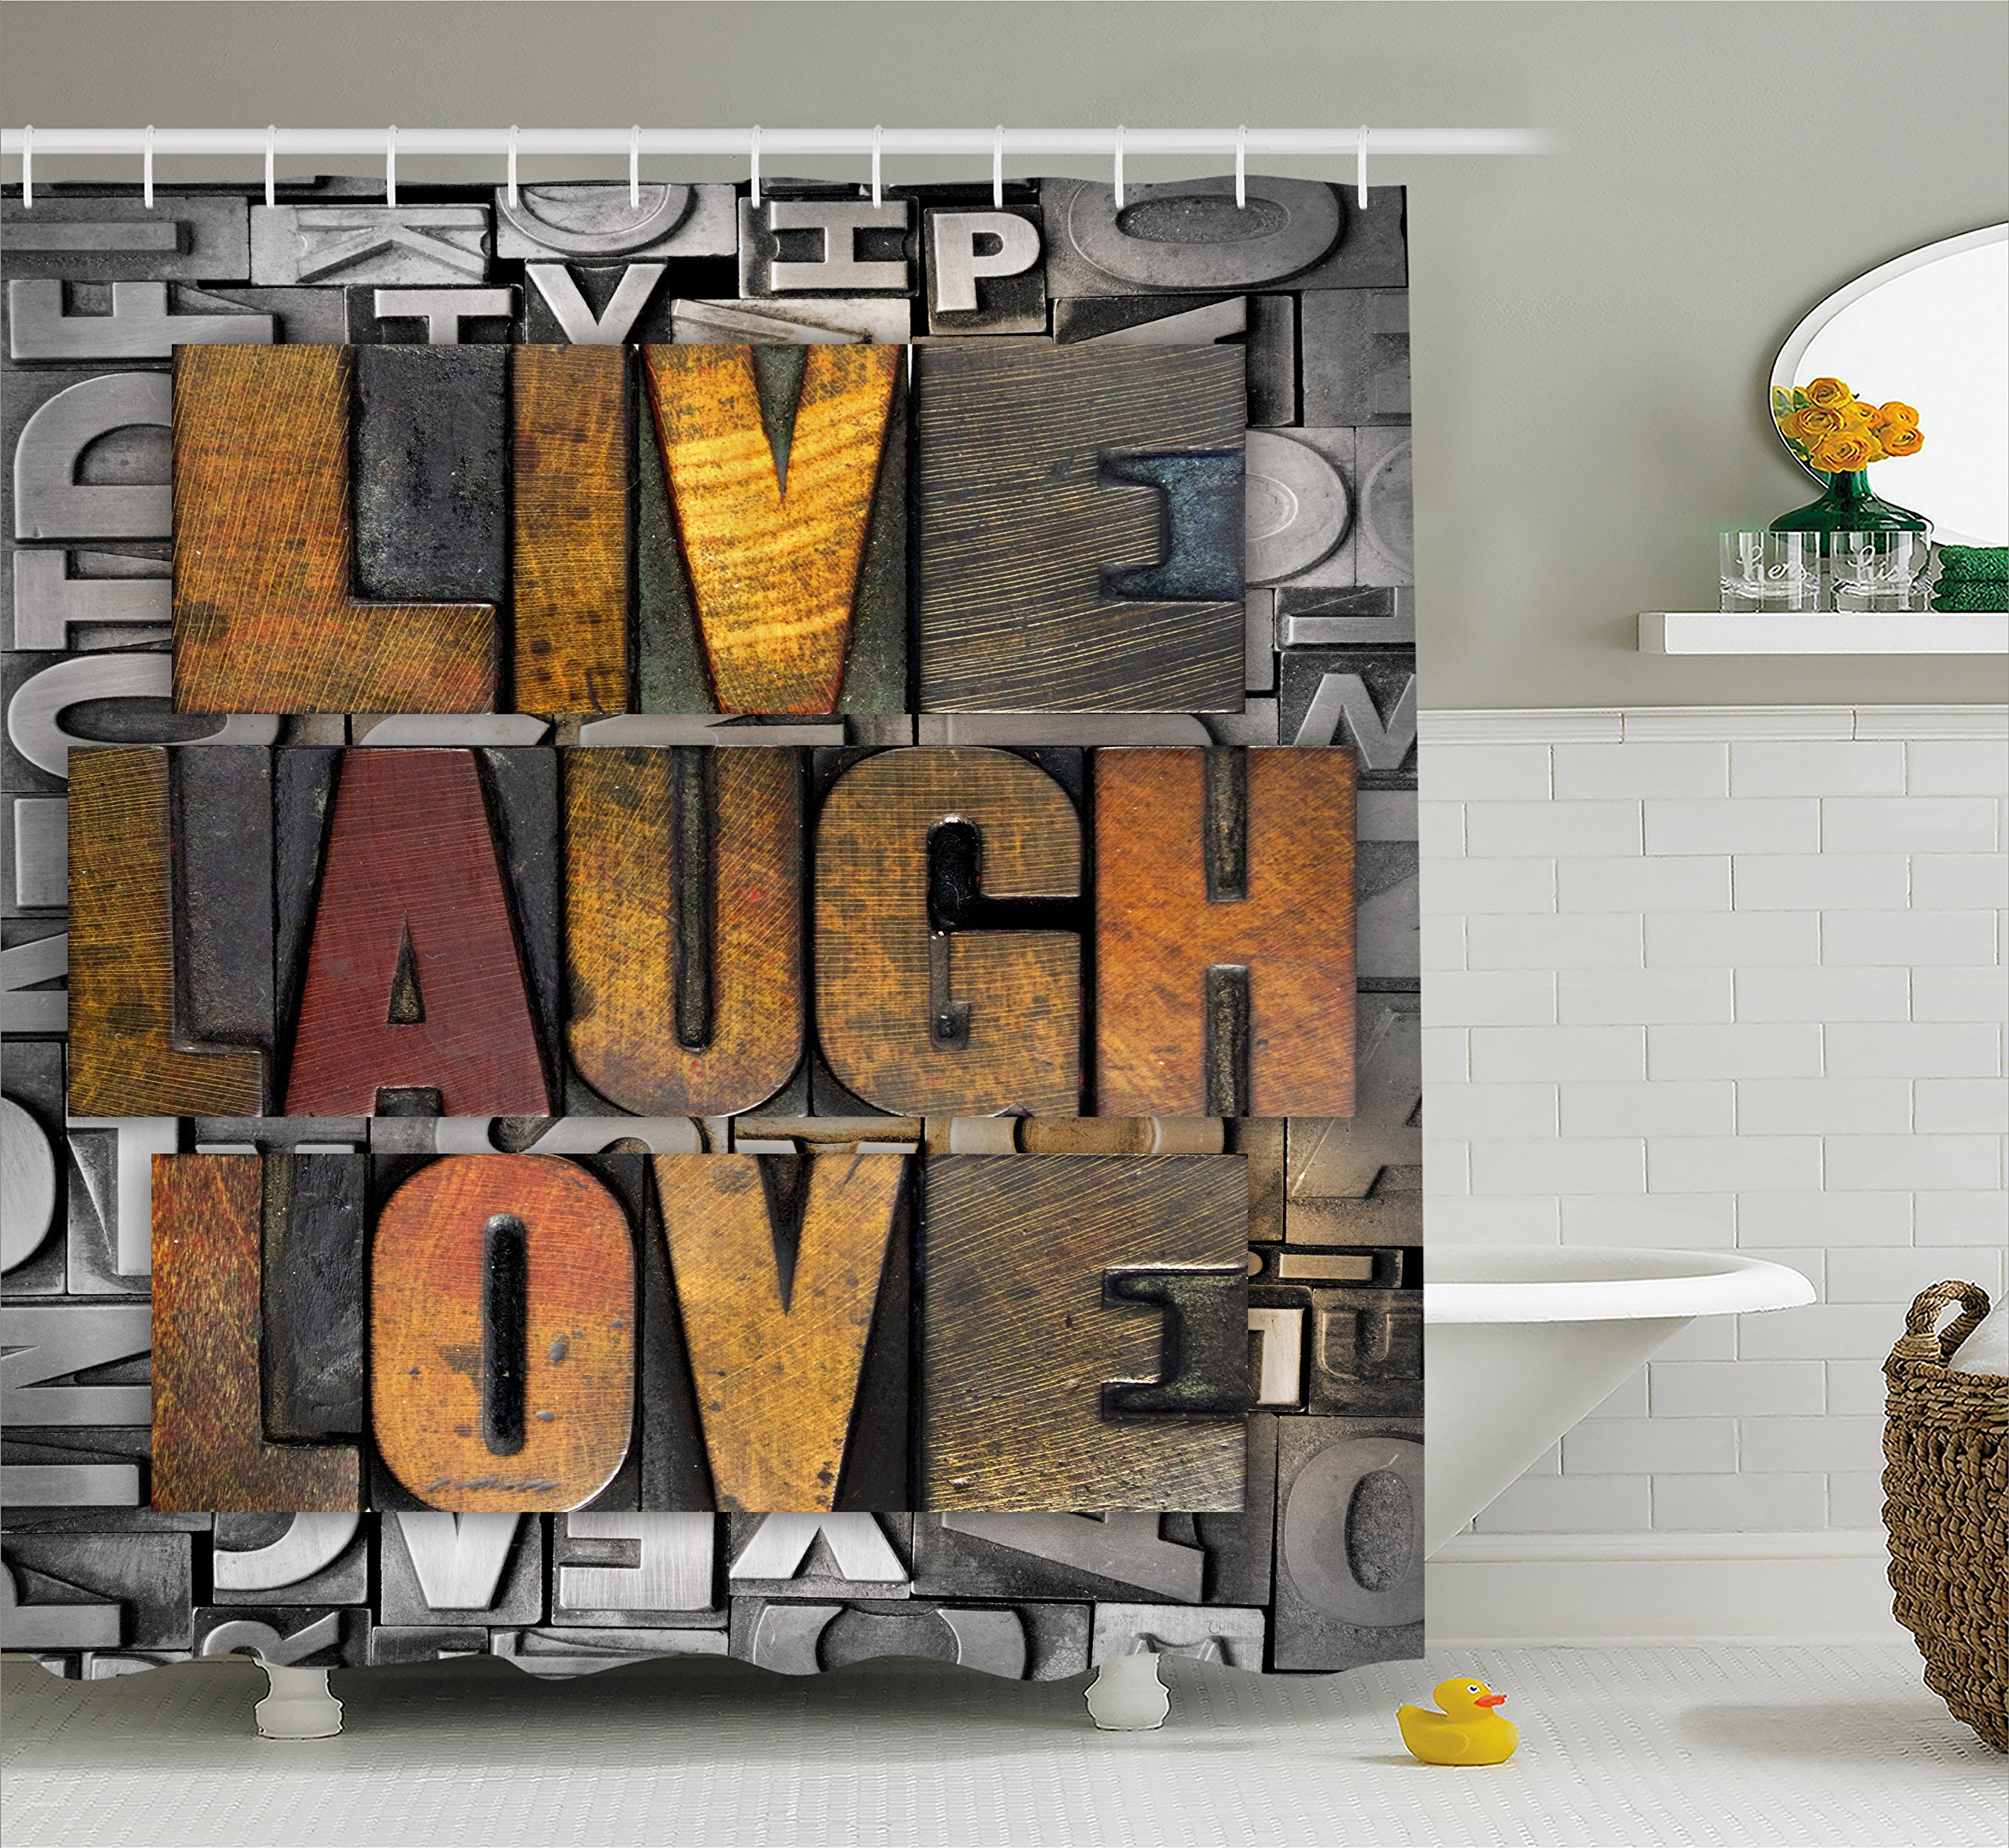 Ambesonne Live Laugh Love Shower Curtain, Saying Promoting The Sacred Values of Human Life in Colorful a Pattern, Cloth Fabric Bathroom Decor Set with Hooks, 70 Inches, Multicolor